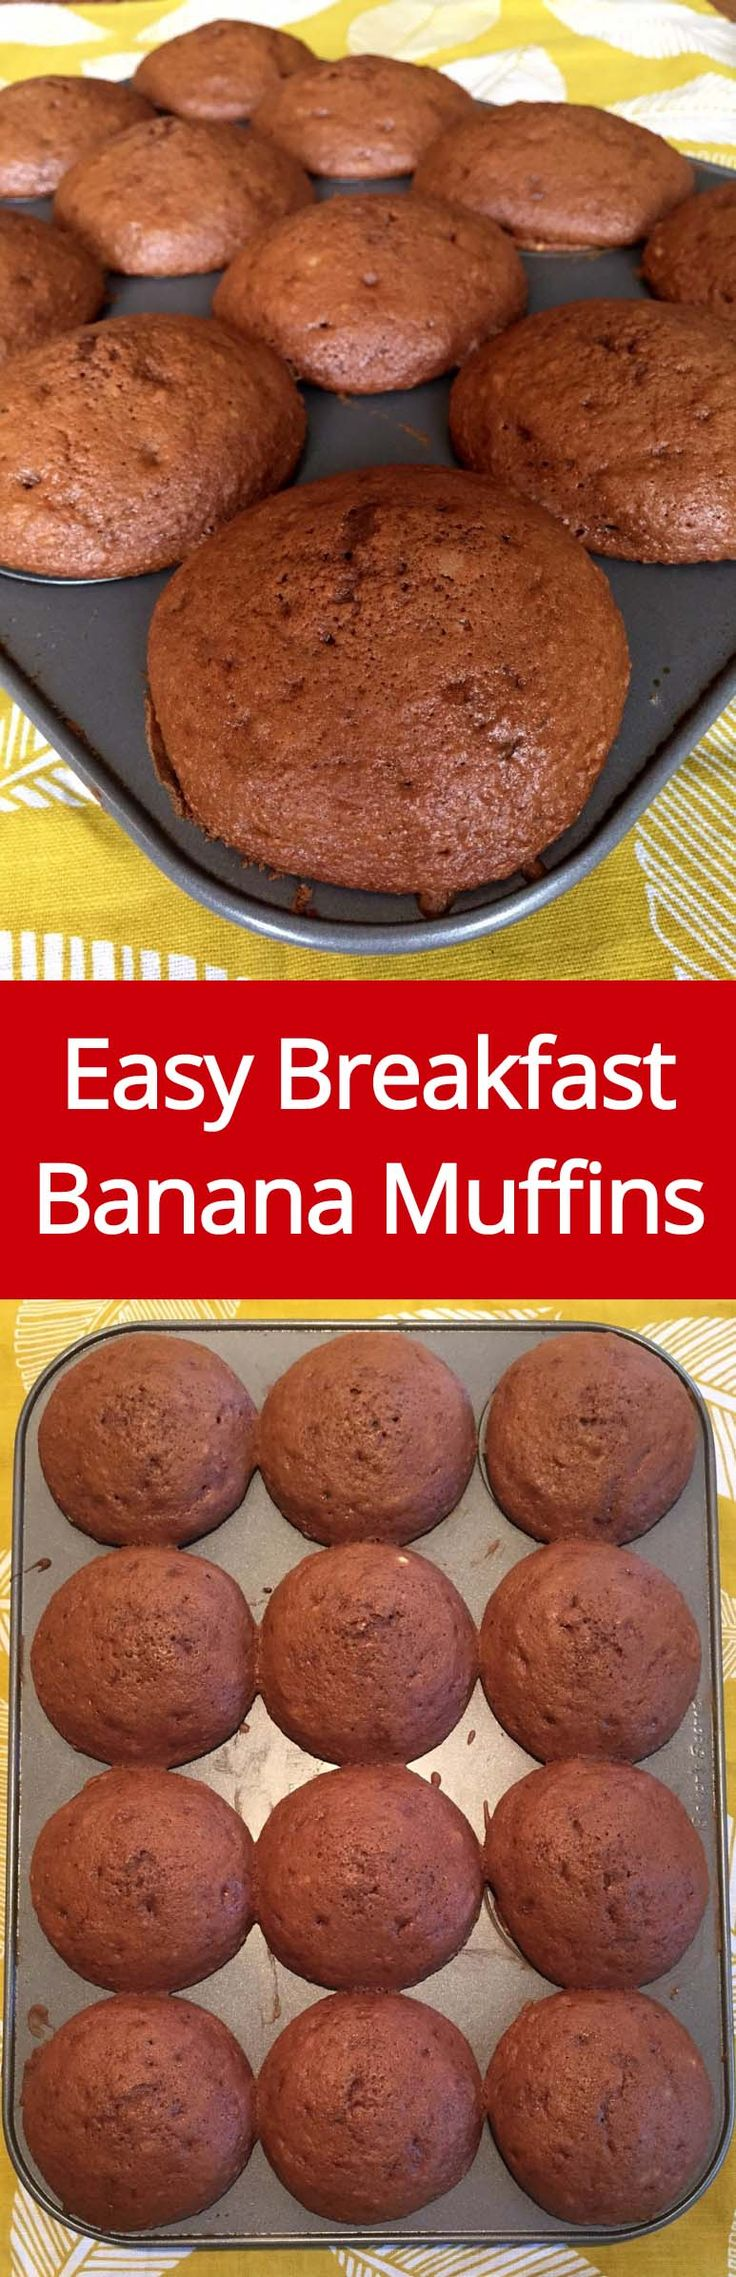 Easy Banana Muffins - these huge muffins are like banana bread in a muffin form!  Perfect for breakfast! | MelanieCooks.com